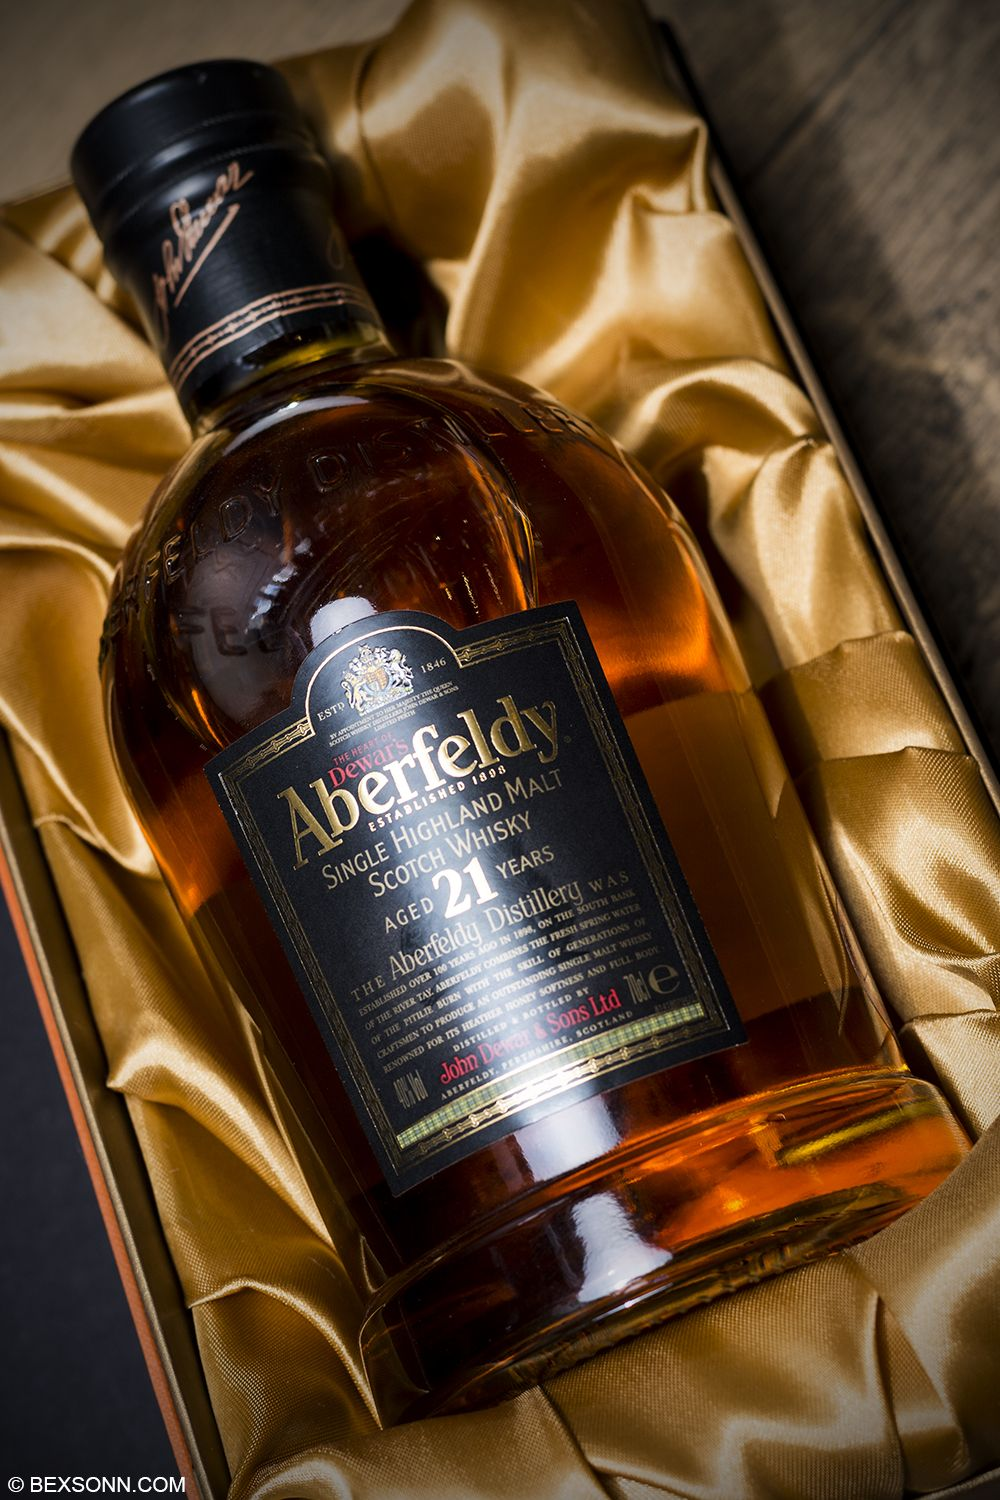 SINGLE MALT SCOTCH: For his collection; adds breath and character for either him or when entertaining friends.